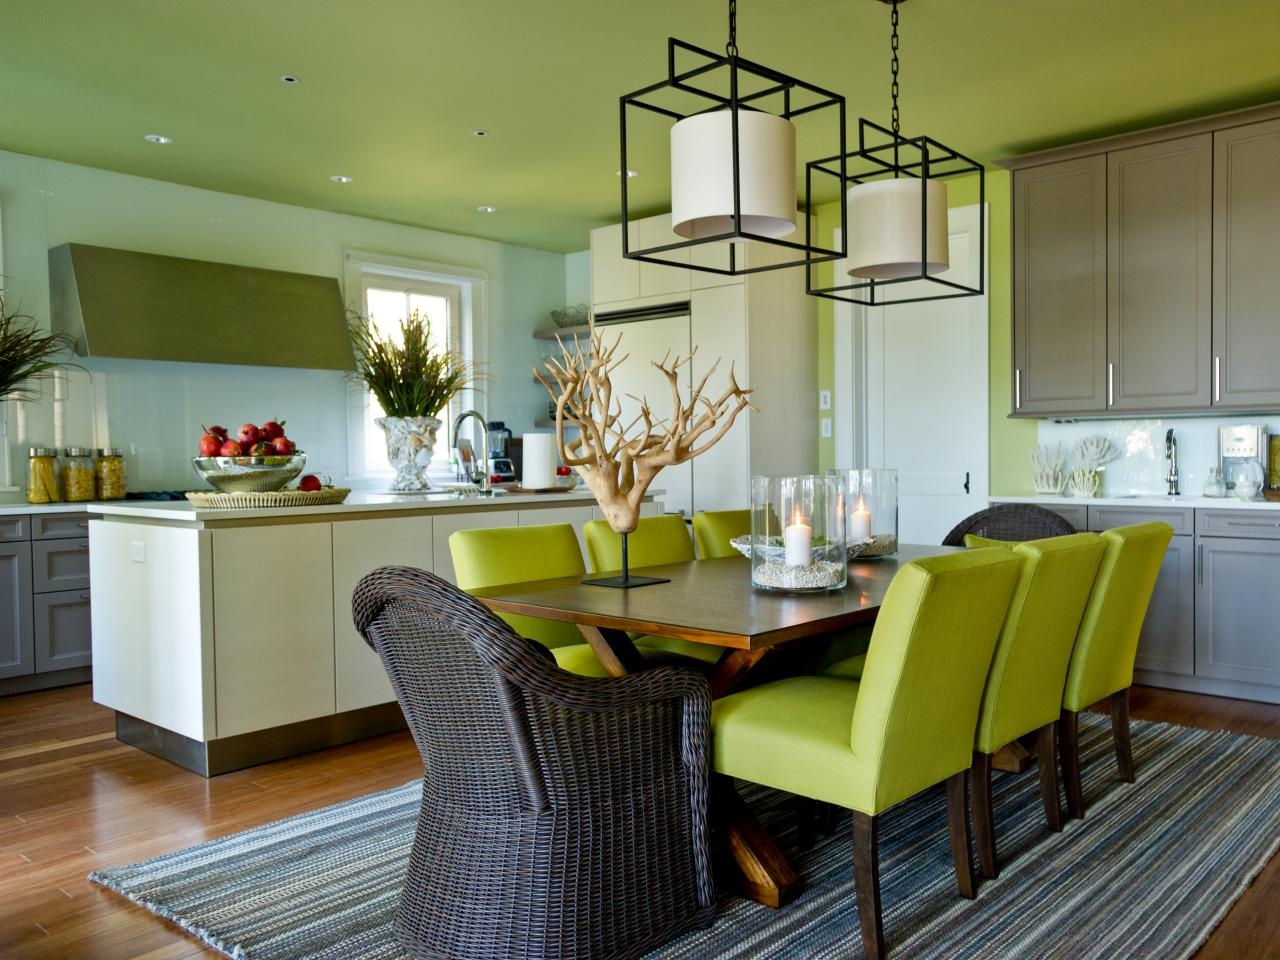 Dining room from hgtv dream home 2013 pictures and video Dream room design